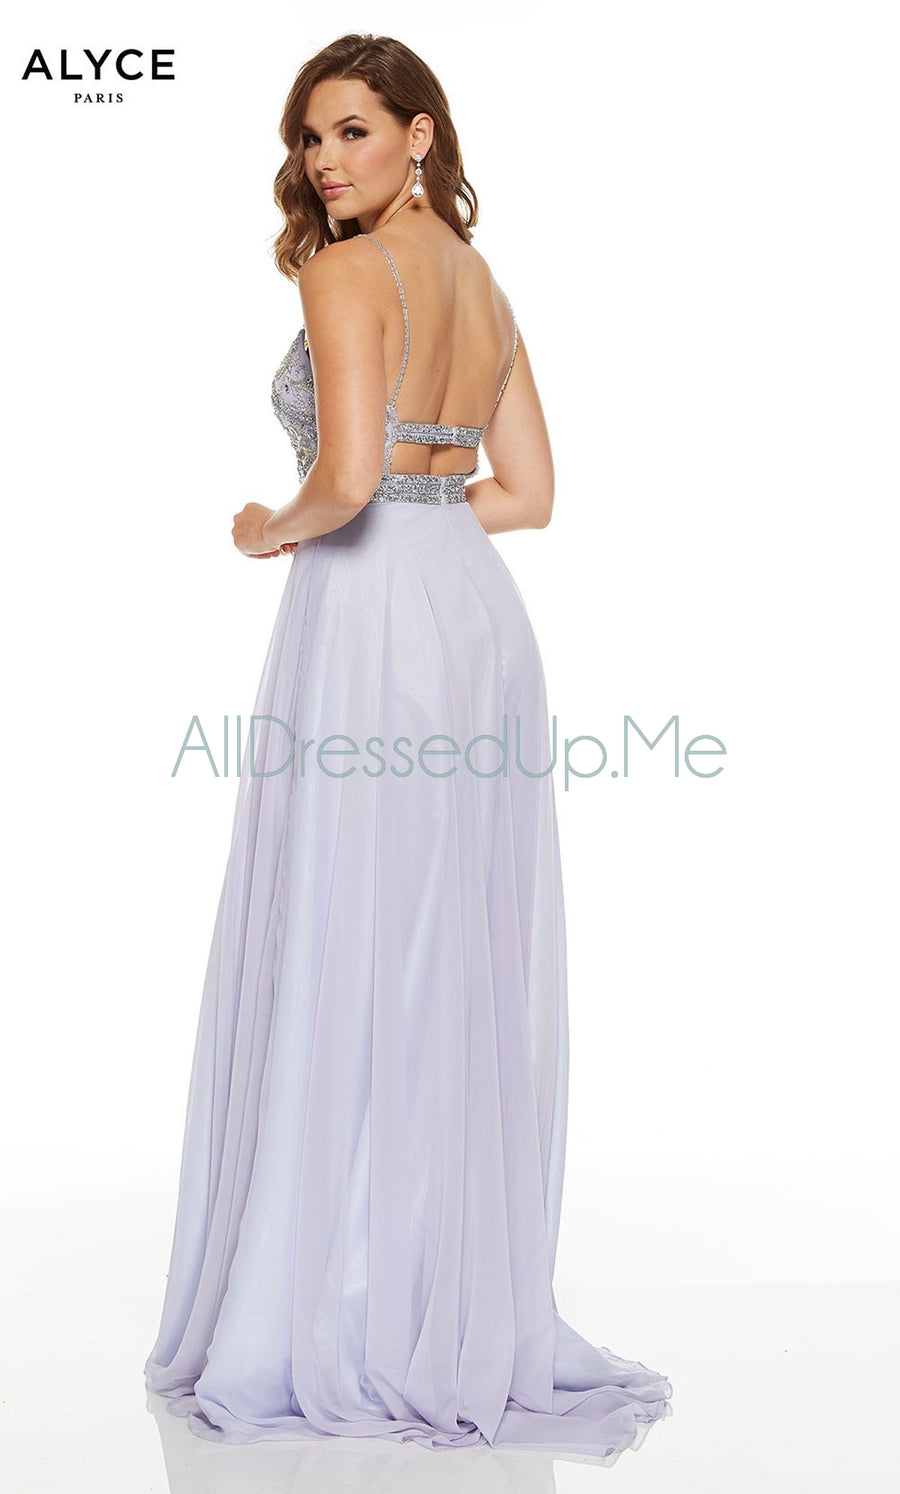 Alyce Paris - 60689 - All Dressed Up, Prom/Party Dress - - Dresses Two Piece Cut Out Sweetheart Halter Low Back High Neck Print Beaded Chiffon Jersey Fitted Sexy Satin Lace Jeweled Sparkle Shimmer Sleeveless Stunning Gorgeous Modest See Through Transparent Glitter Special Occasions Event Chattanooga Hixson Shops Boutiques Tennessee TN Georgia GA MSRP Lowest Prices Sale Discount